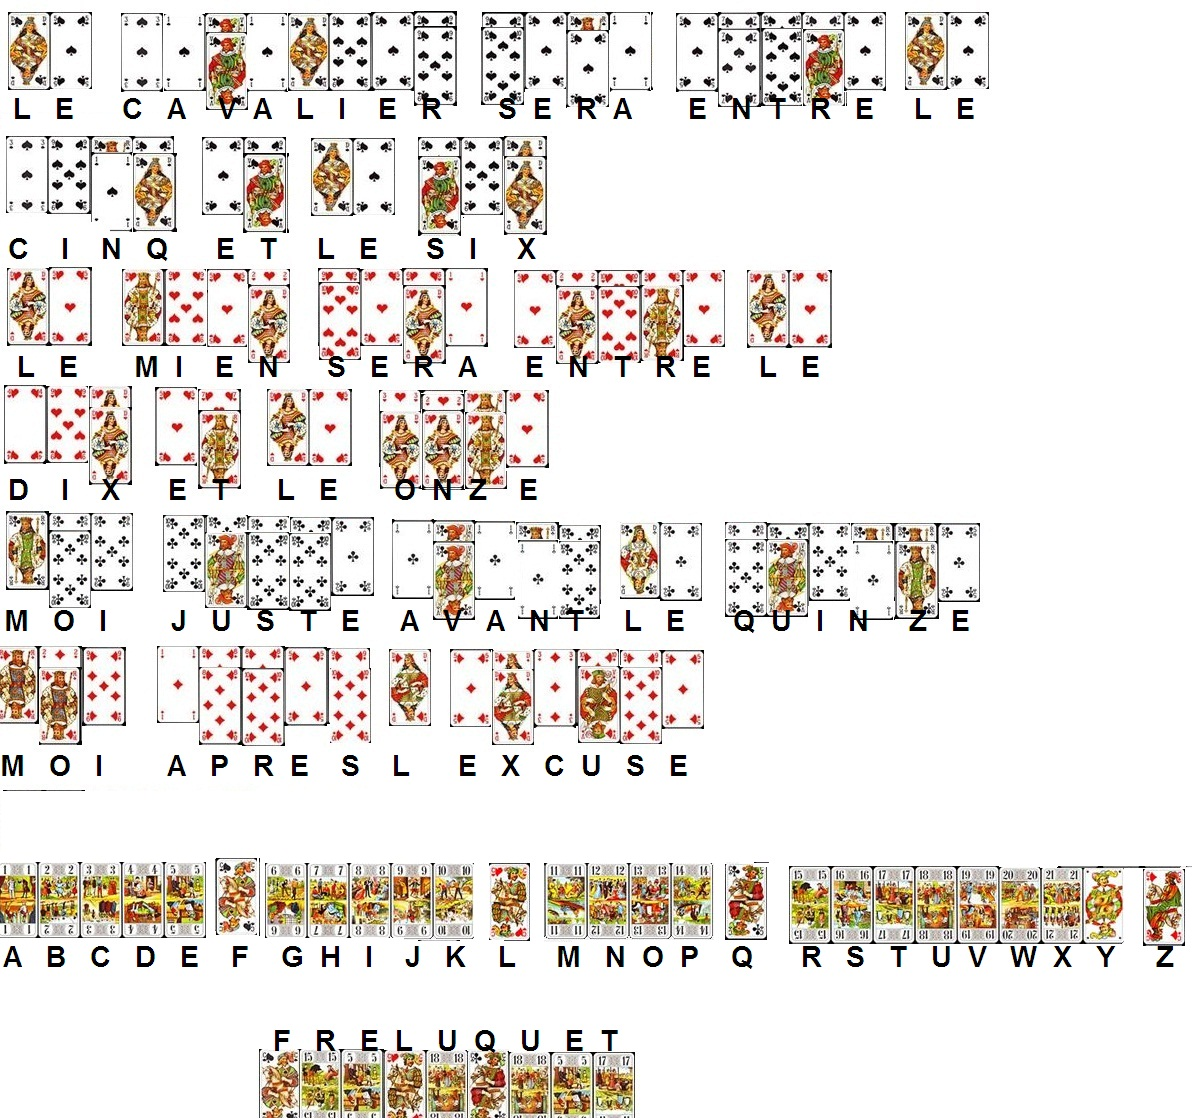 http://www.prise2tete.fr/upload/gilles355-messagecartesrep.jpg